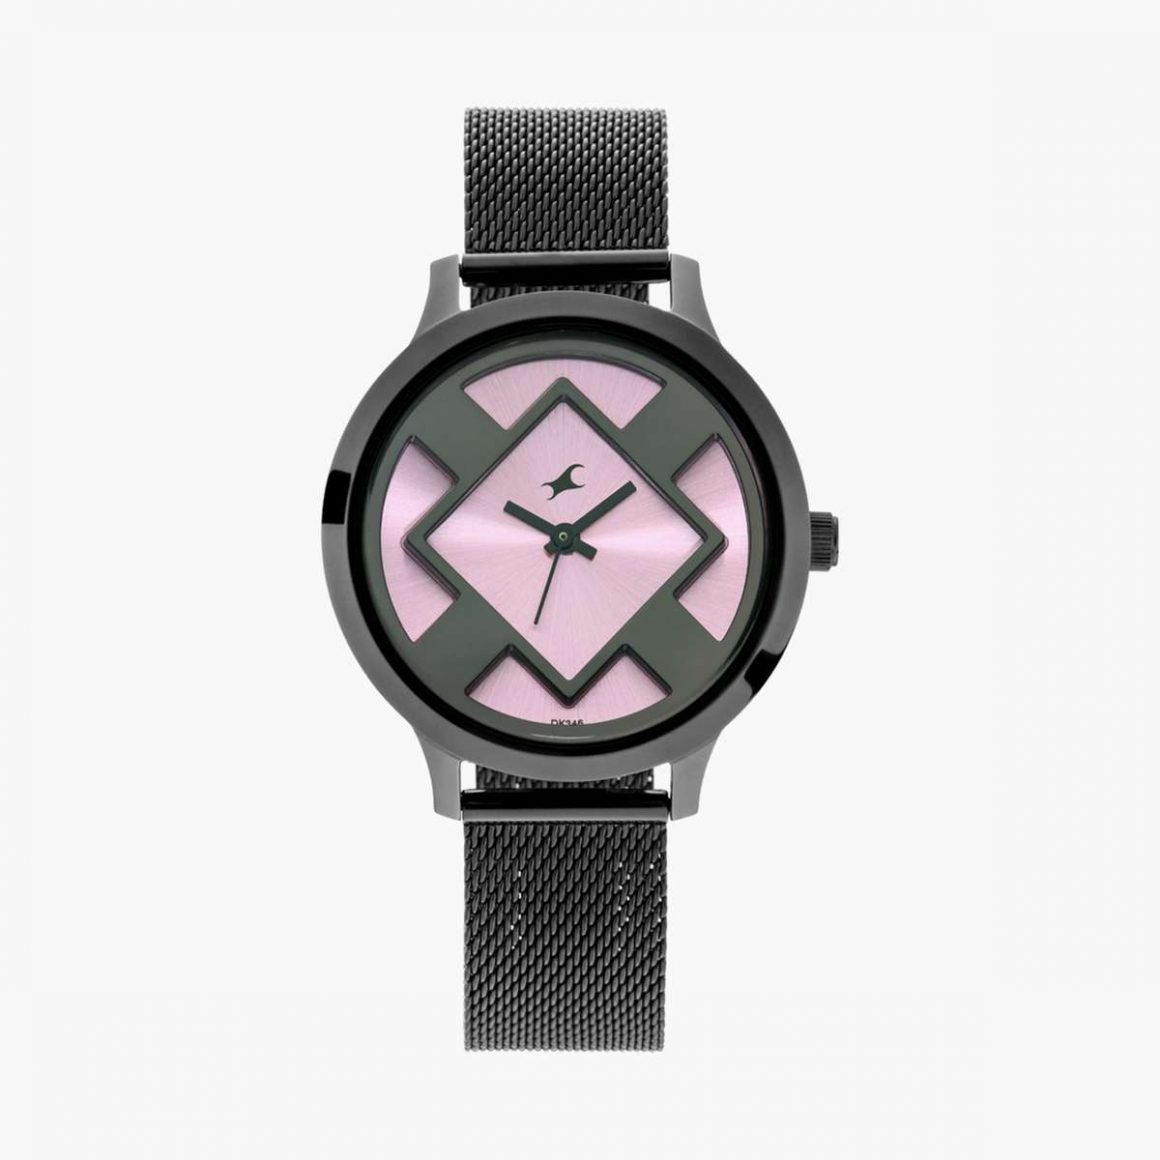 FASTRACK Women Analog Watch with Mesh Strap - 6210NM02